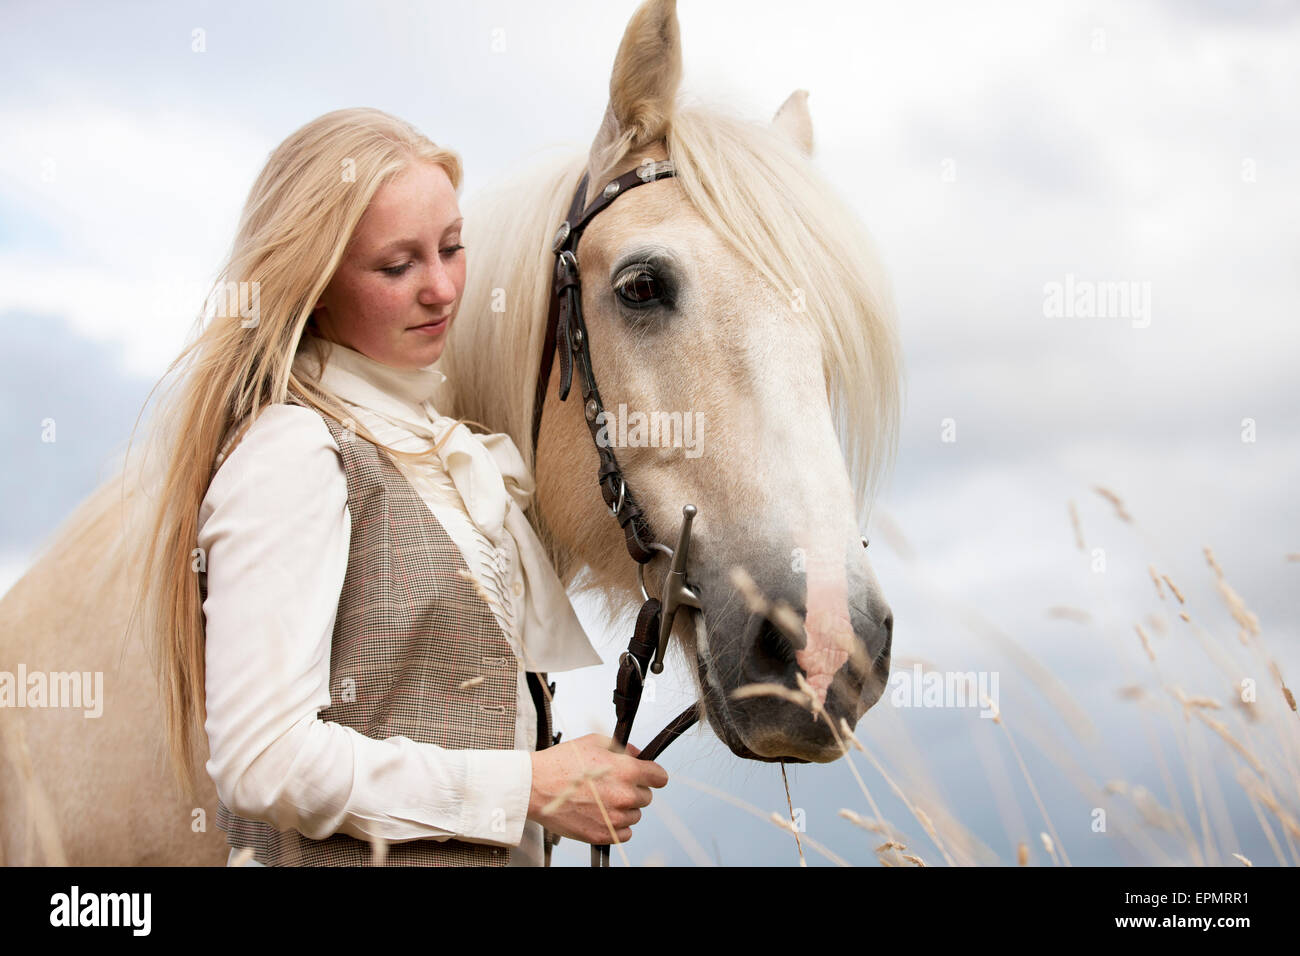 A young woman standing with a palomino horse - Stock Image